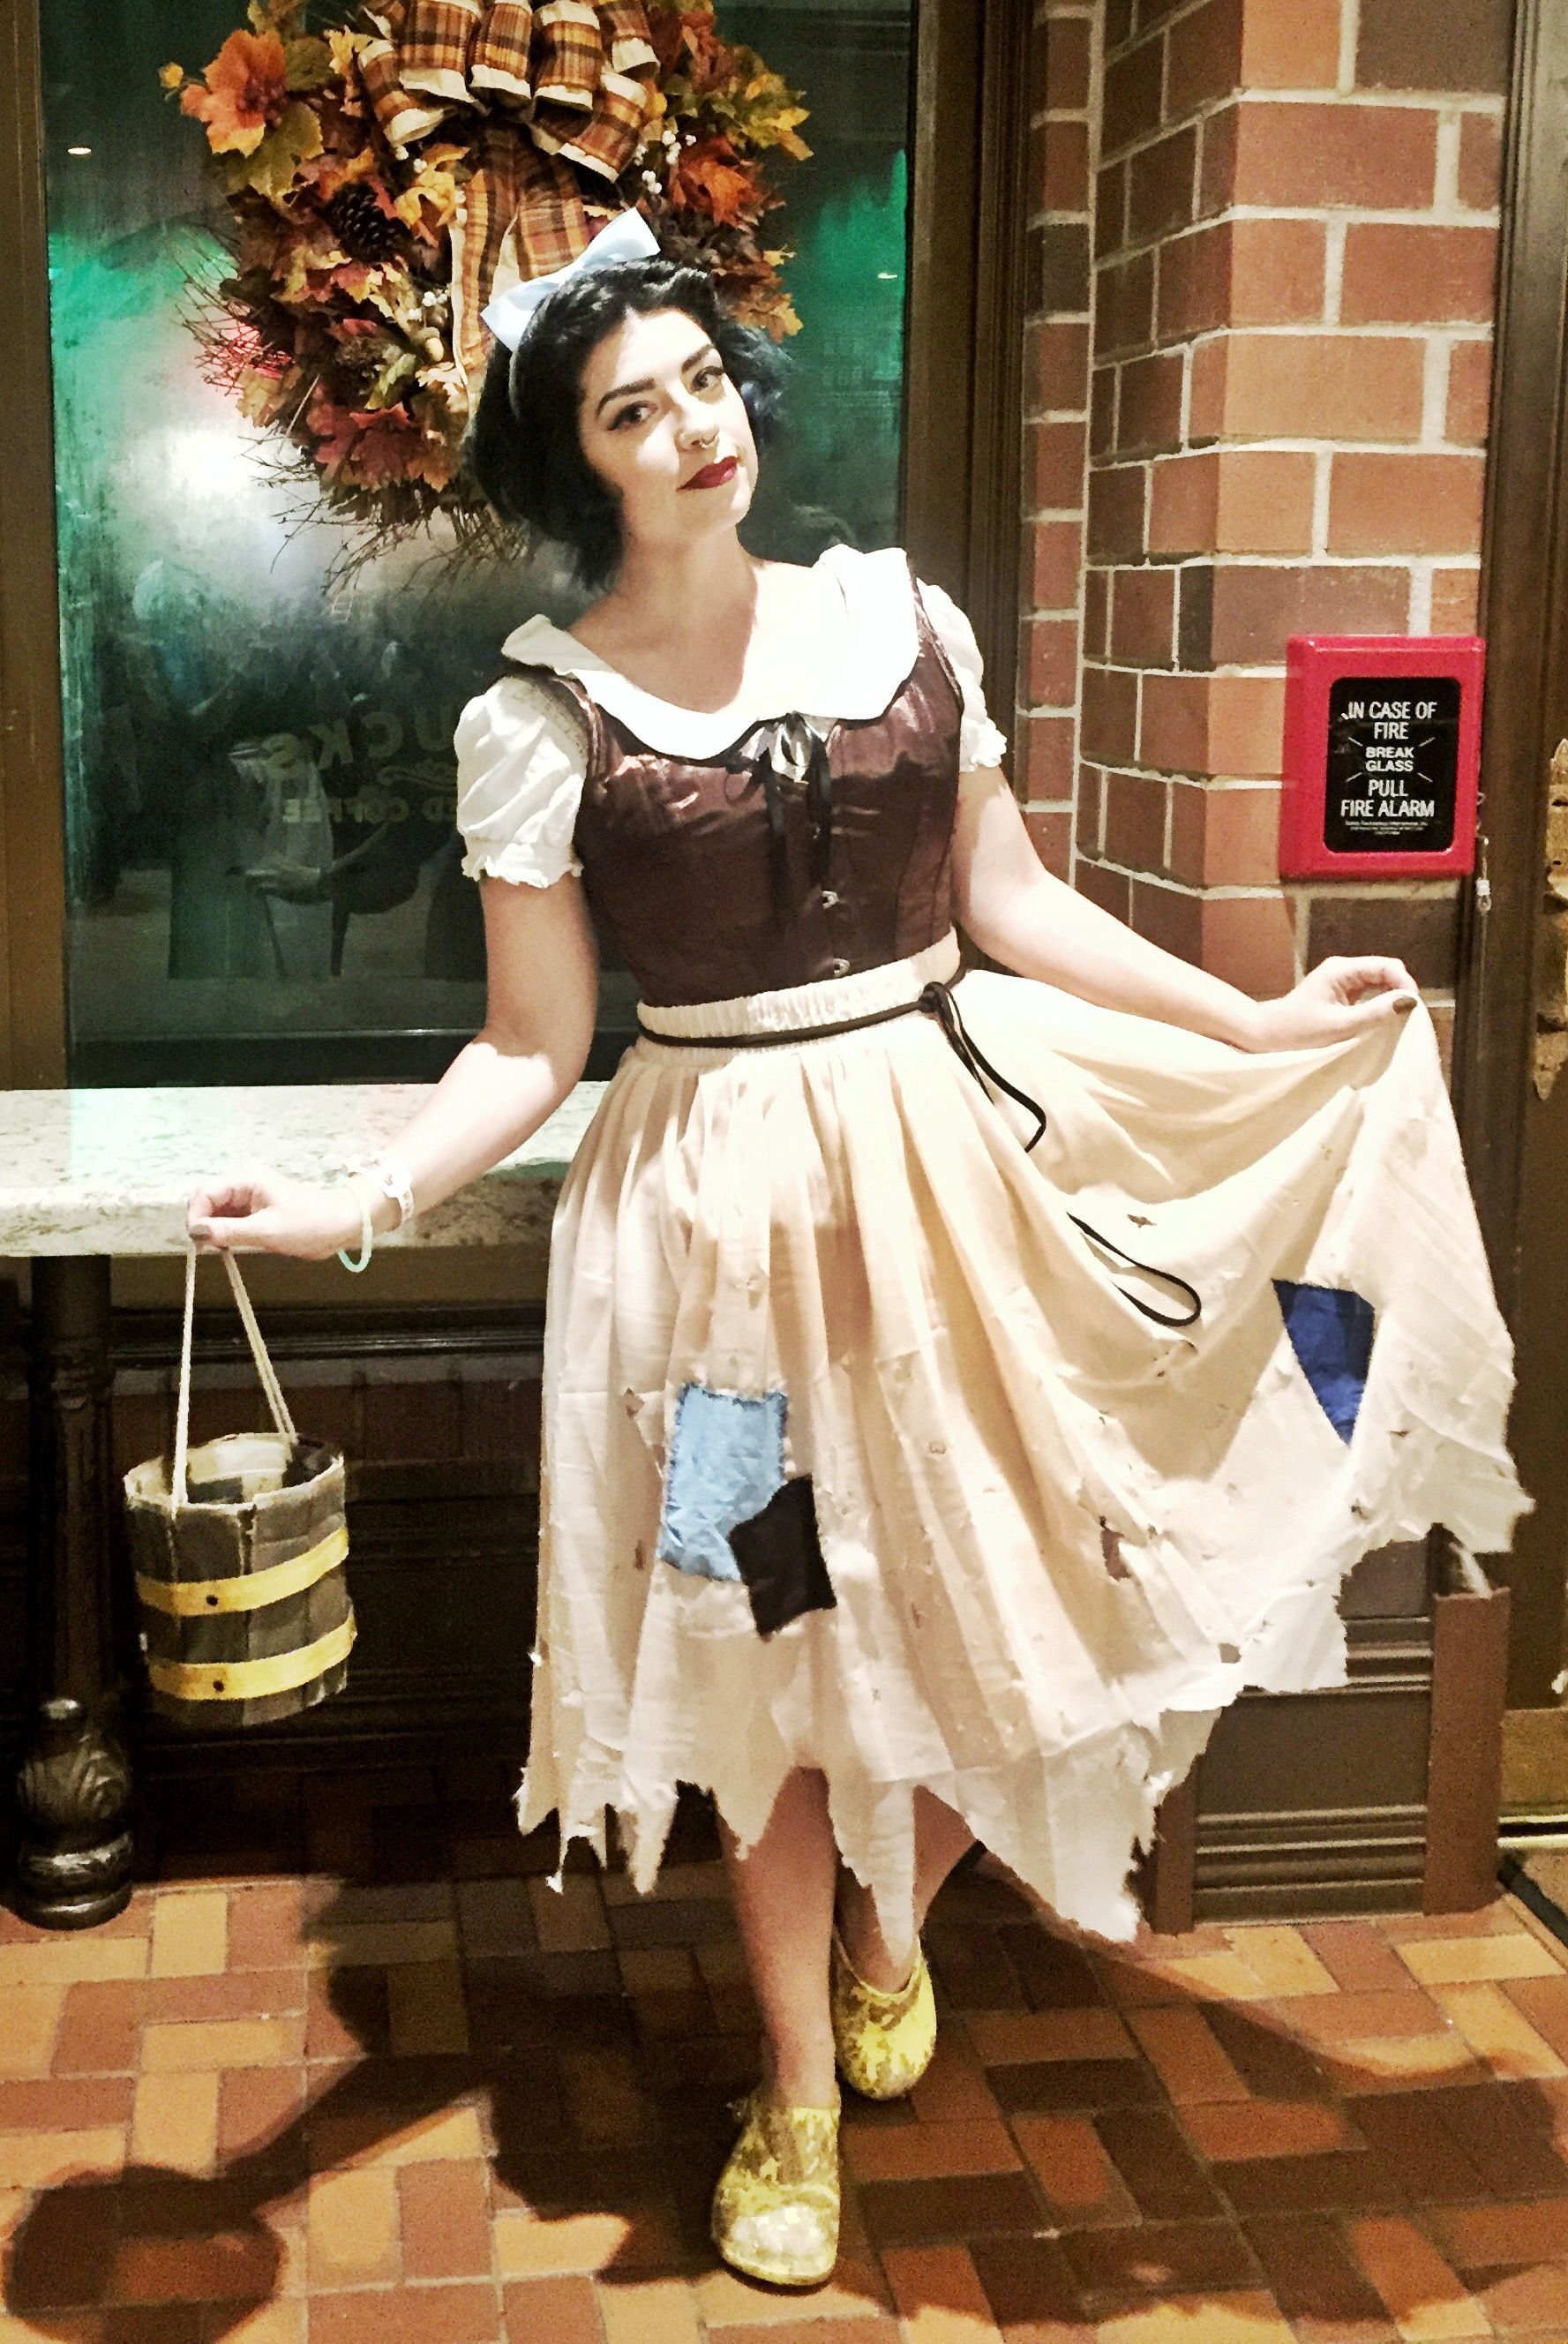 Forced to wear dresses at disneyland stories - Completed snow white rags costume